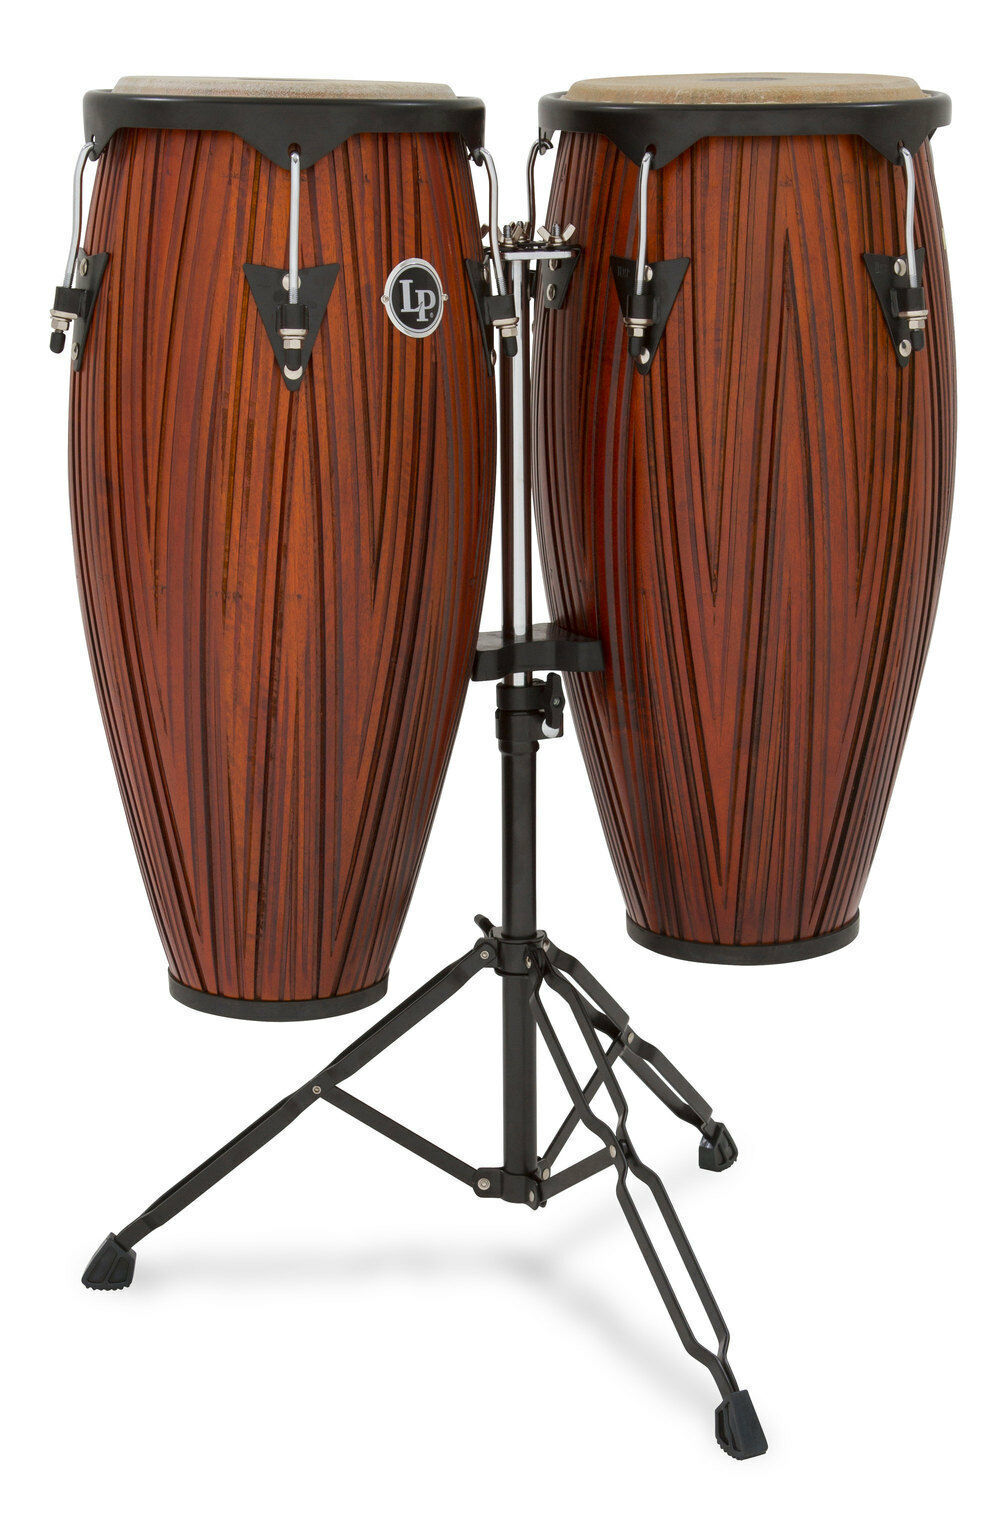 Latin Percussion Congaset City 10  & 11  Latin Percussion